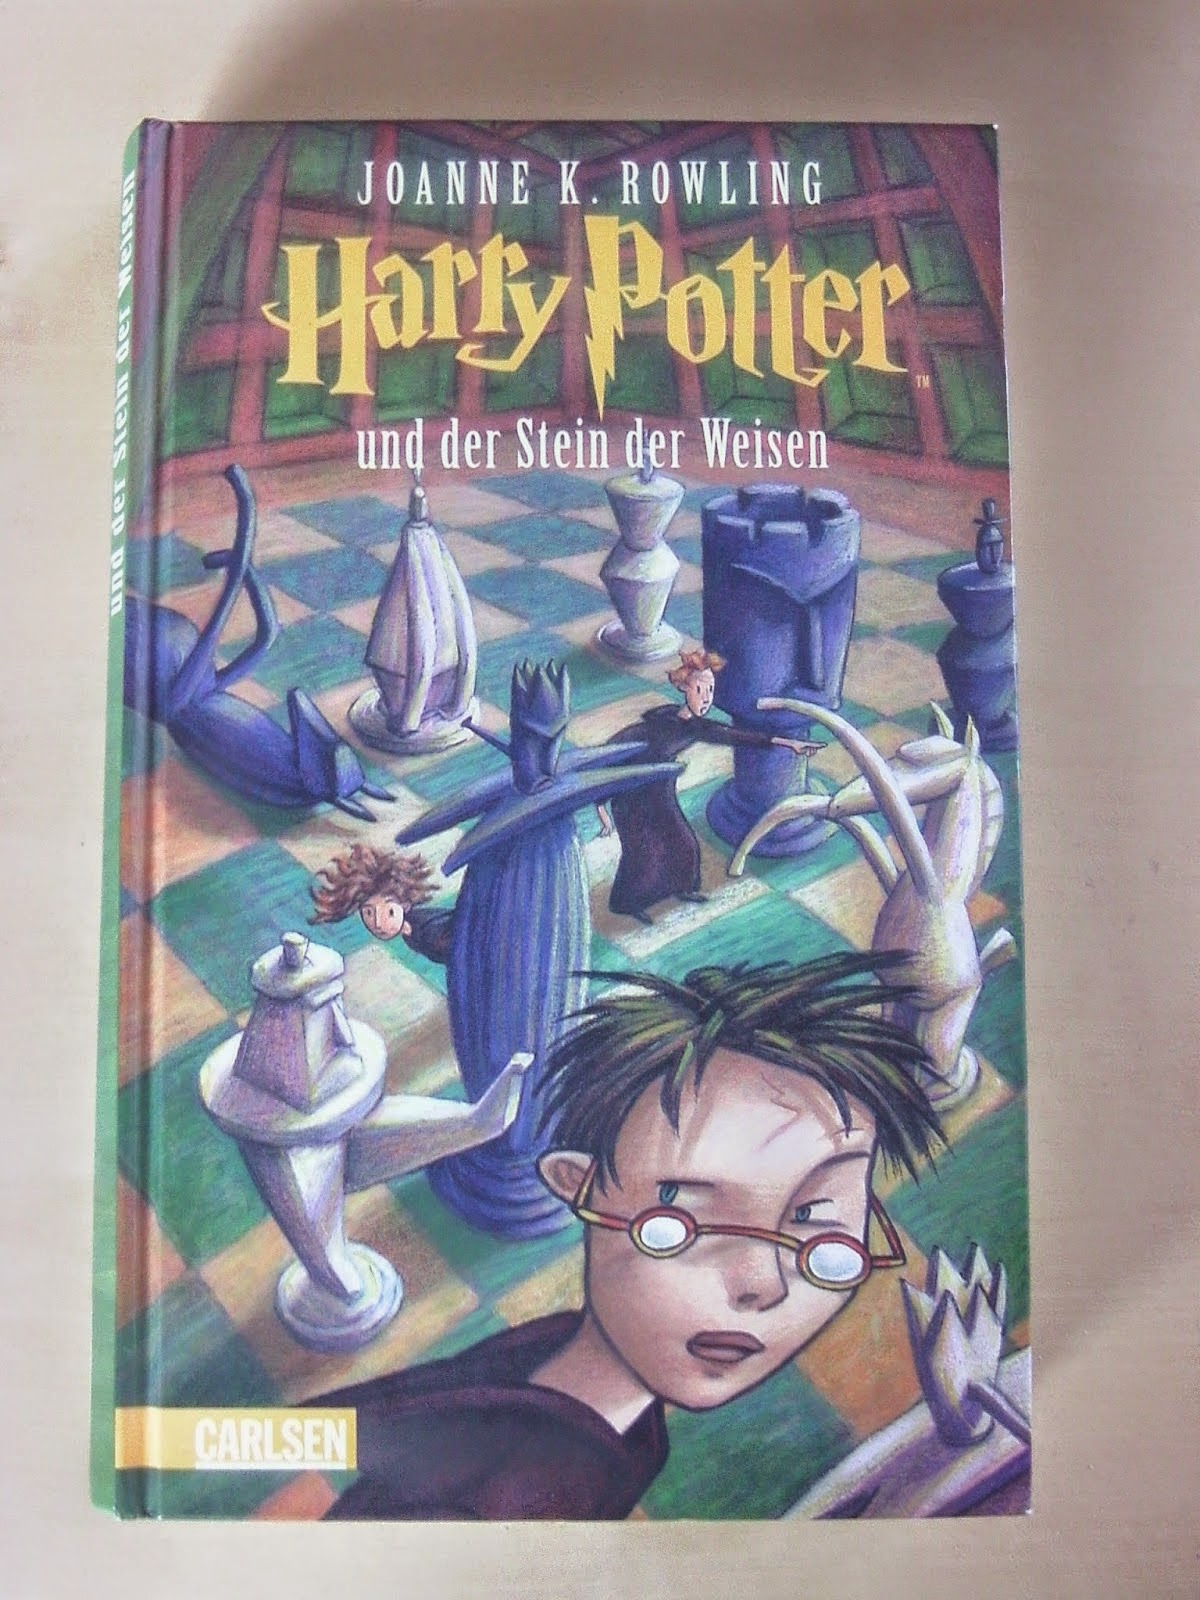 http://steffis-und-heikes-lesezauber.blogspot.de/2014/08/re-read-rezension-2-harry-potter-und.html